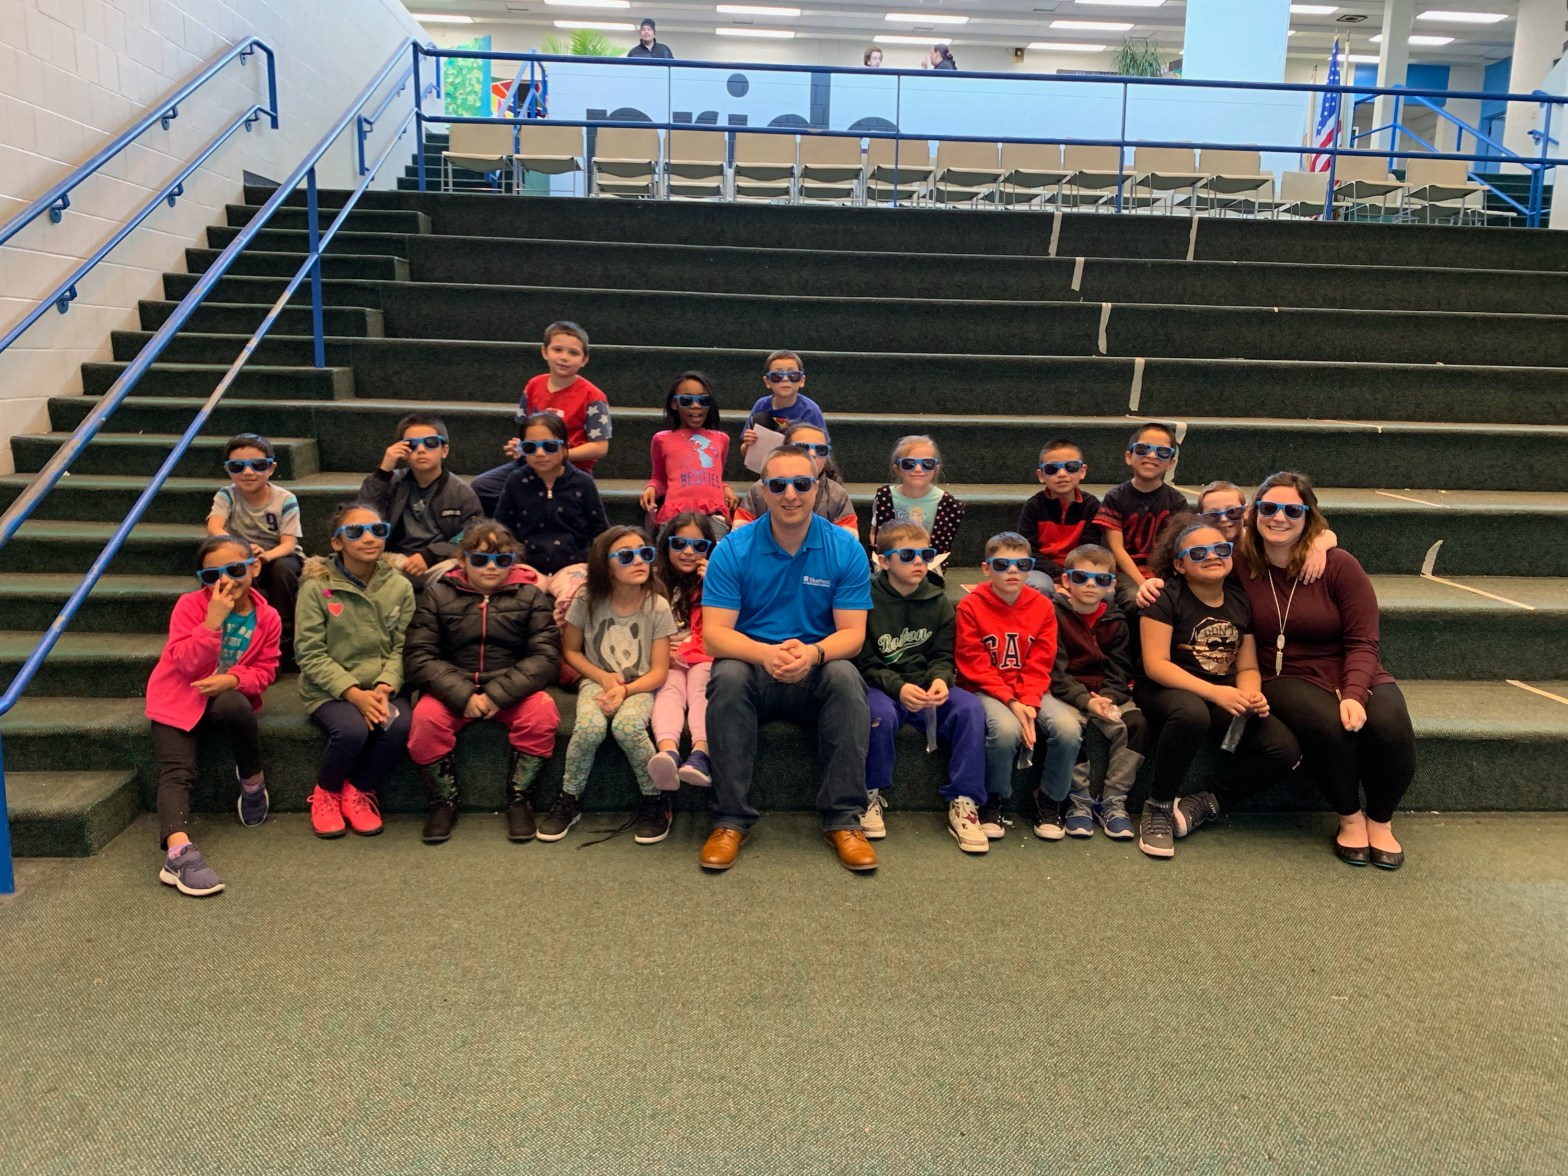 A group of kids, a teacher, and Jonathan sitting on steps all wearing Bluehost sunglasses.